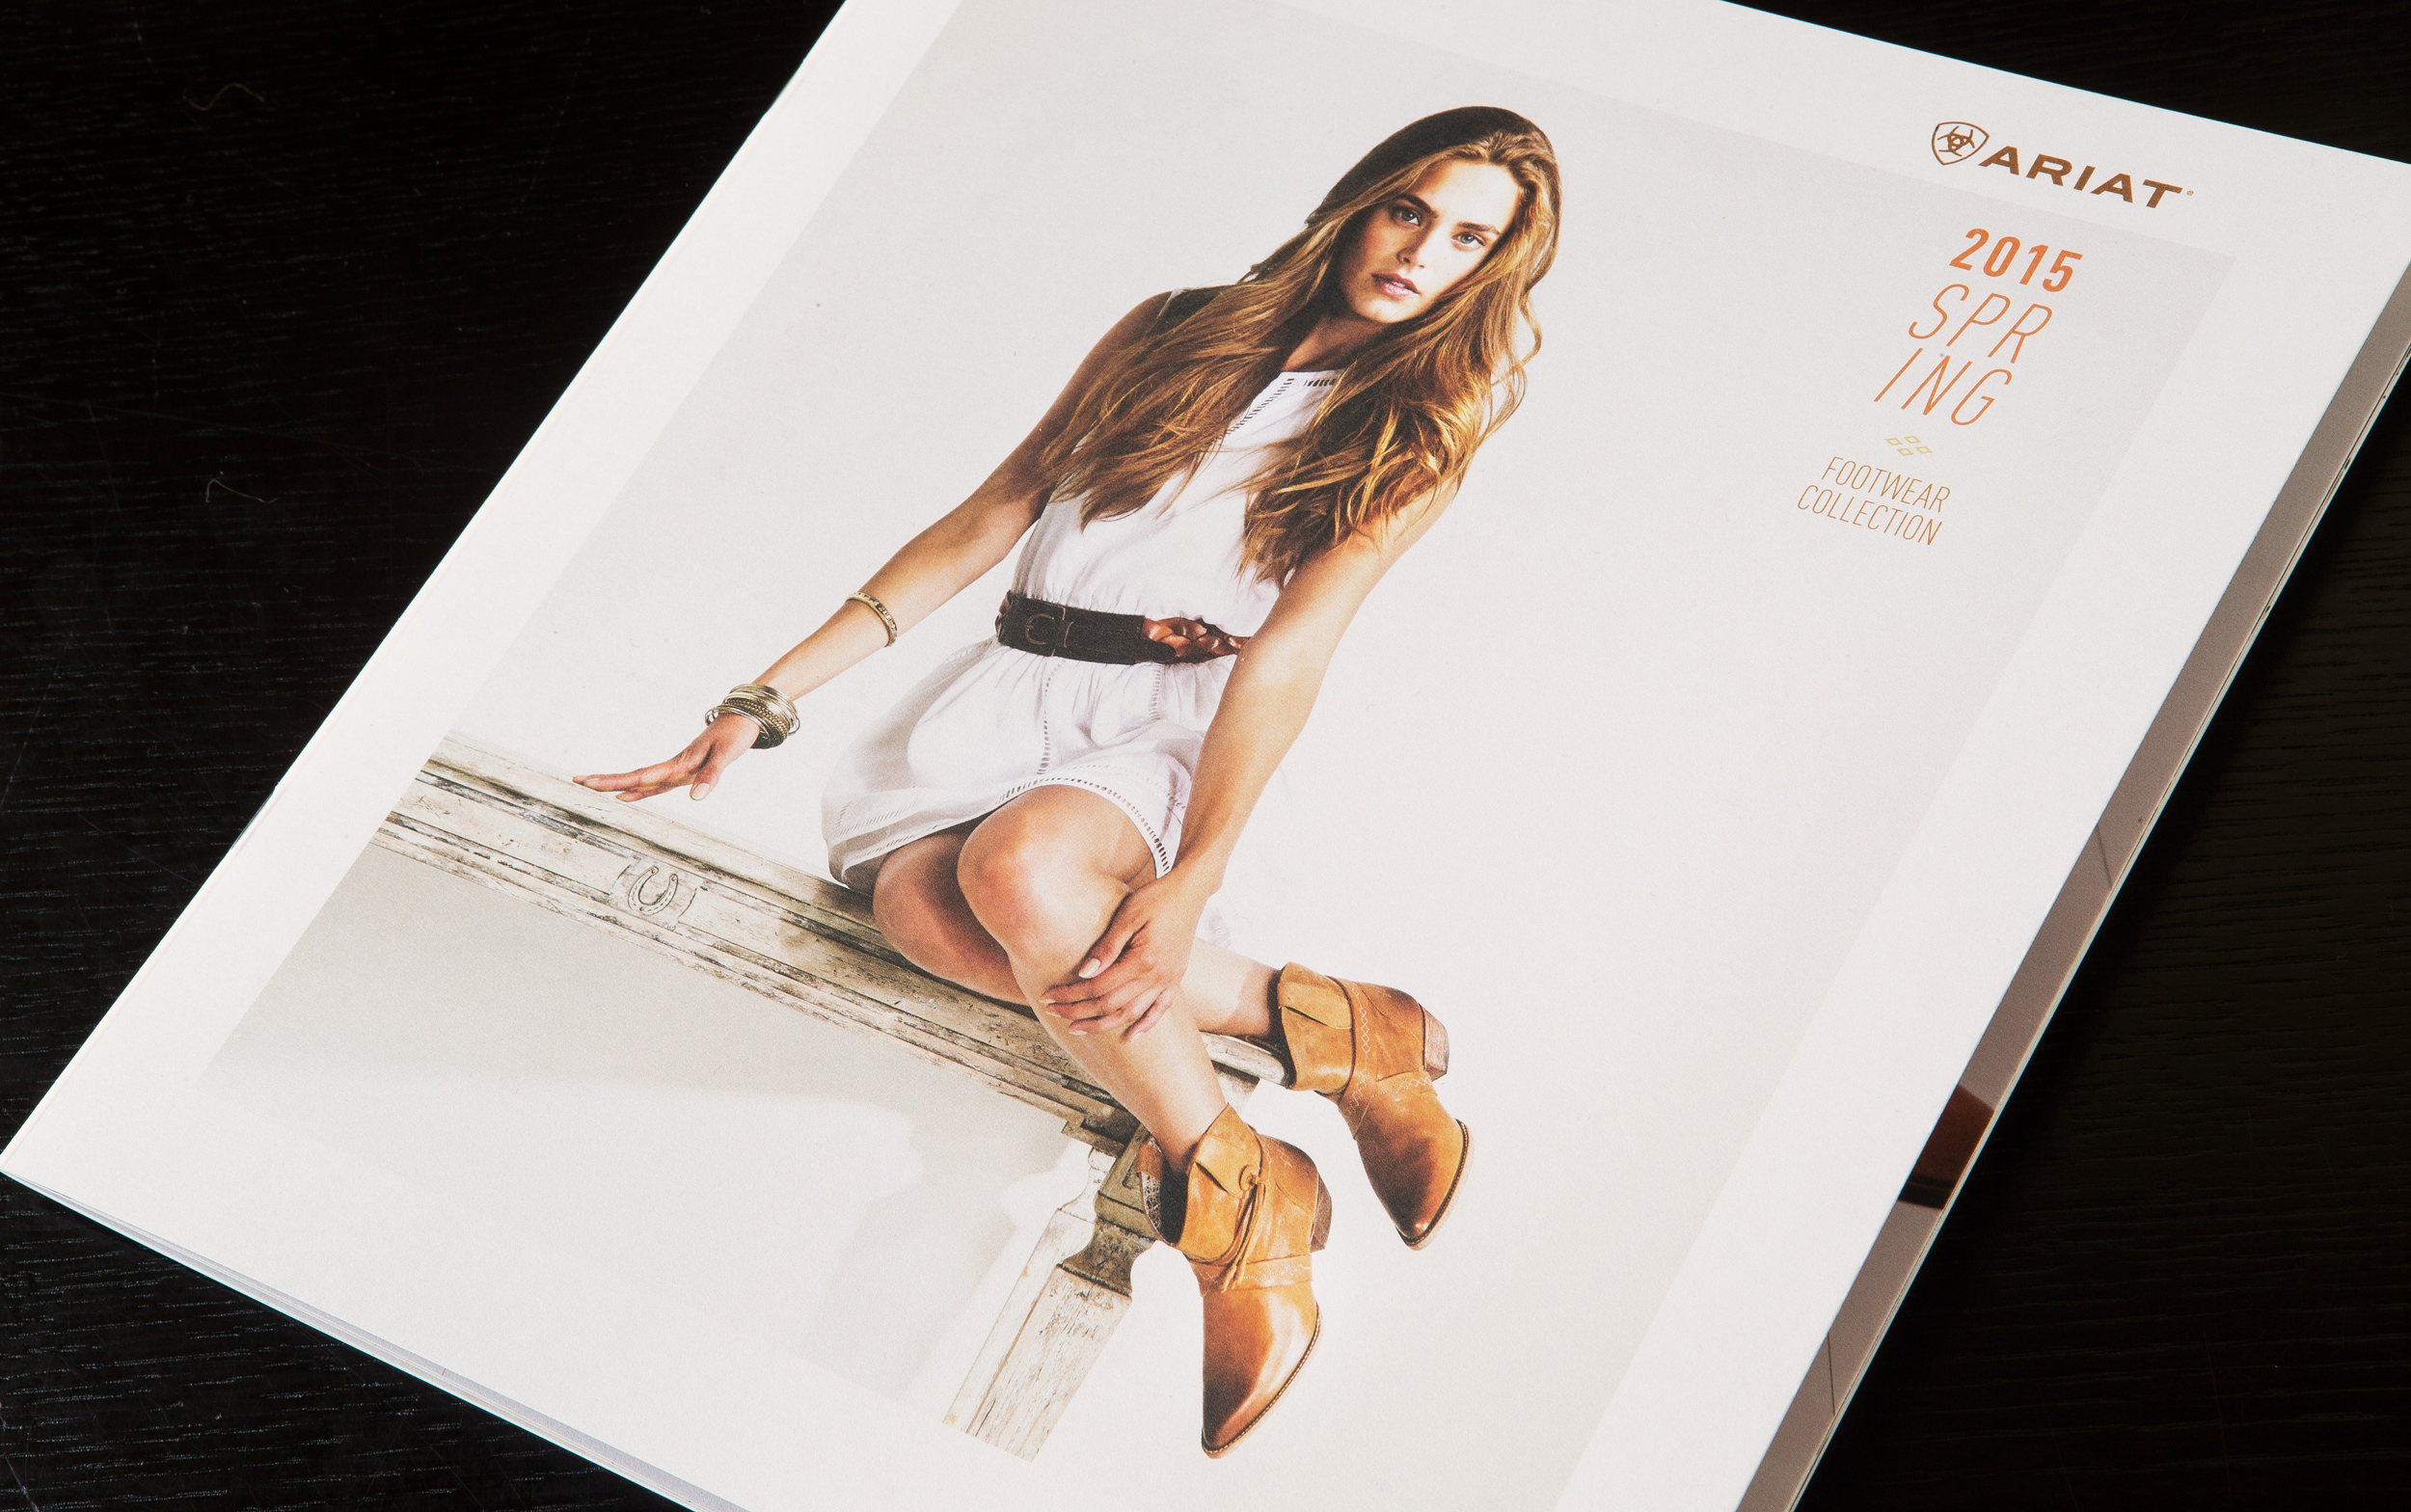 Ariat fashion look book cover with woman on table wearing equestrian inspired boots